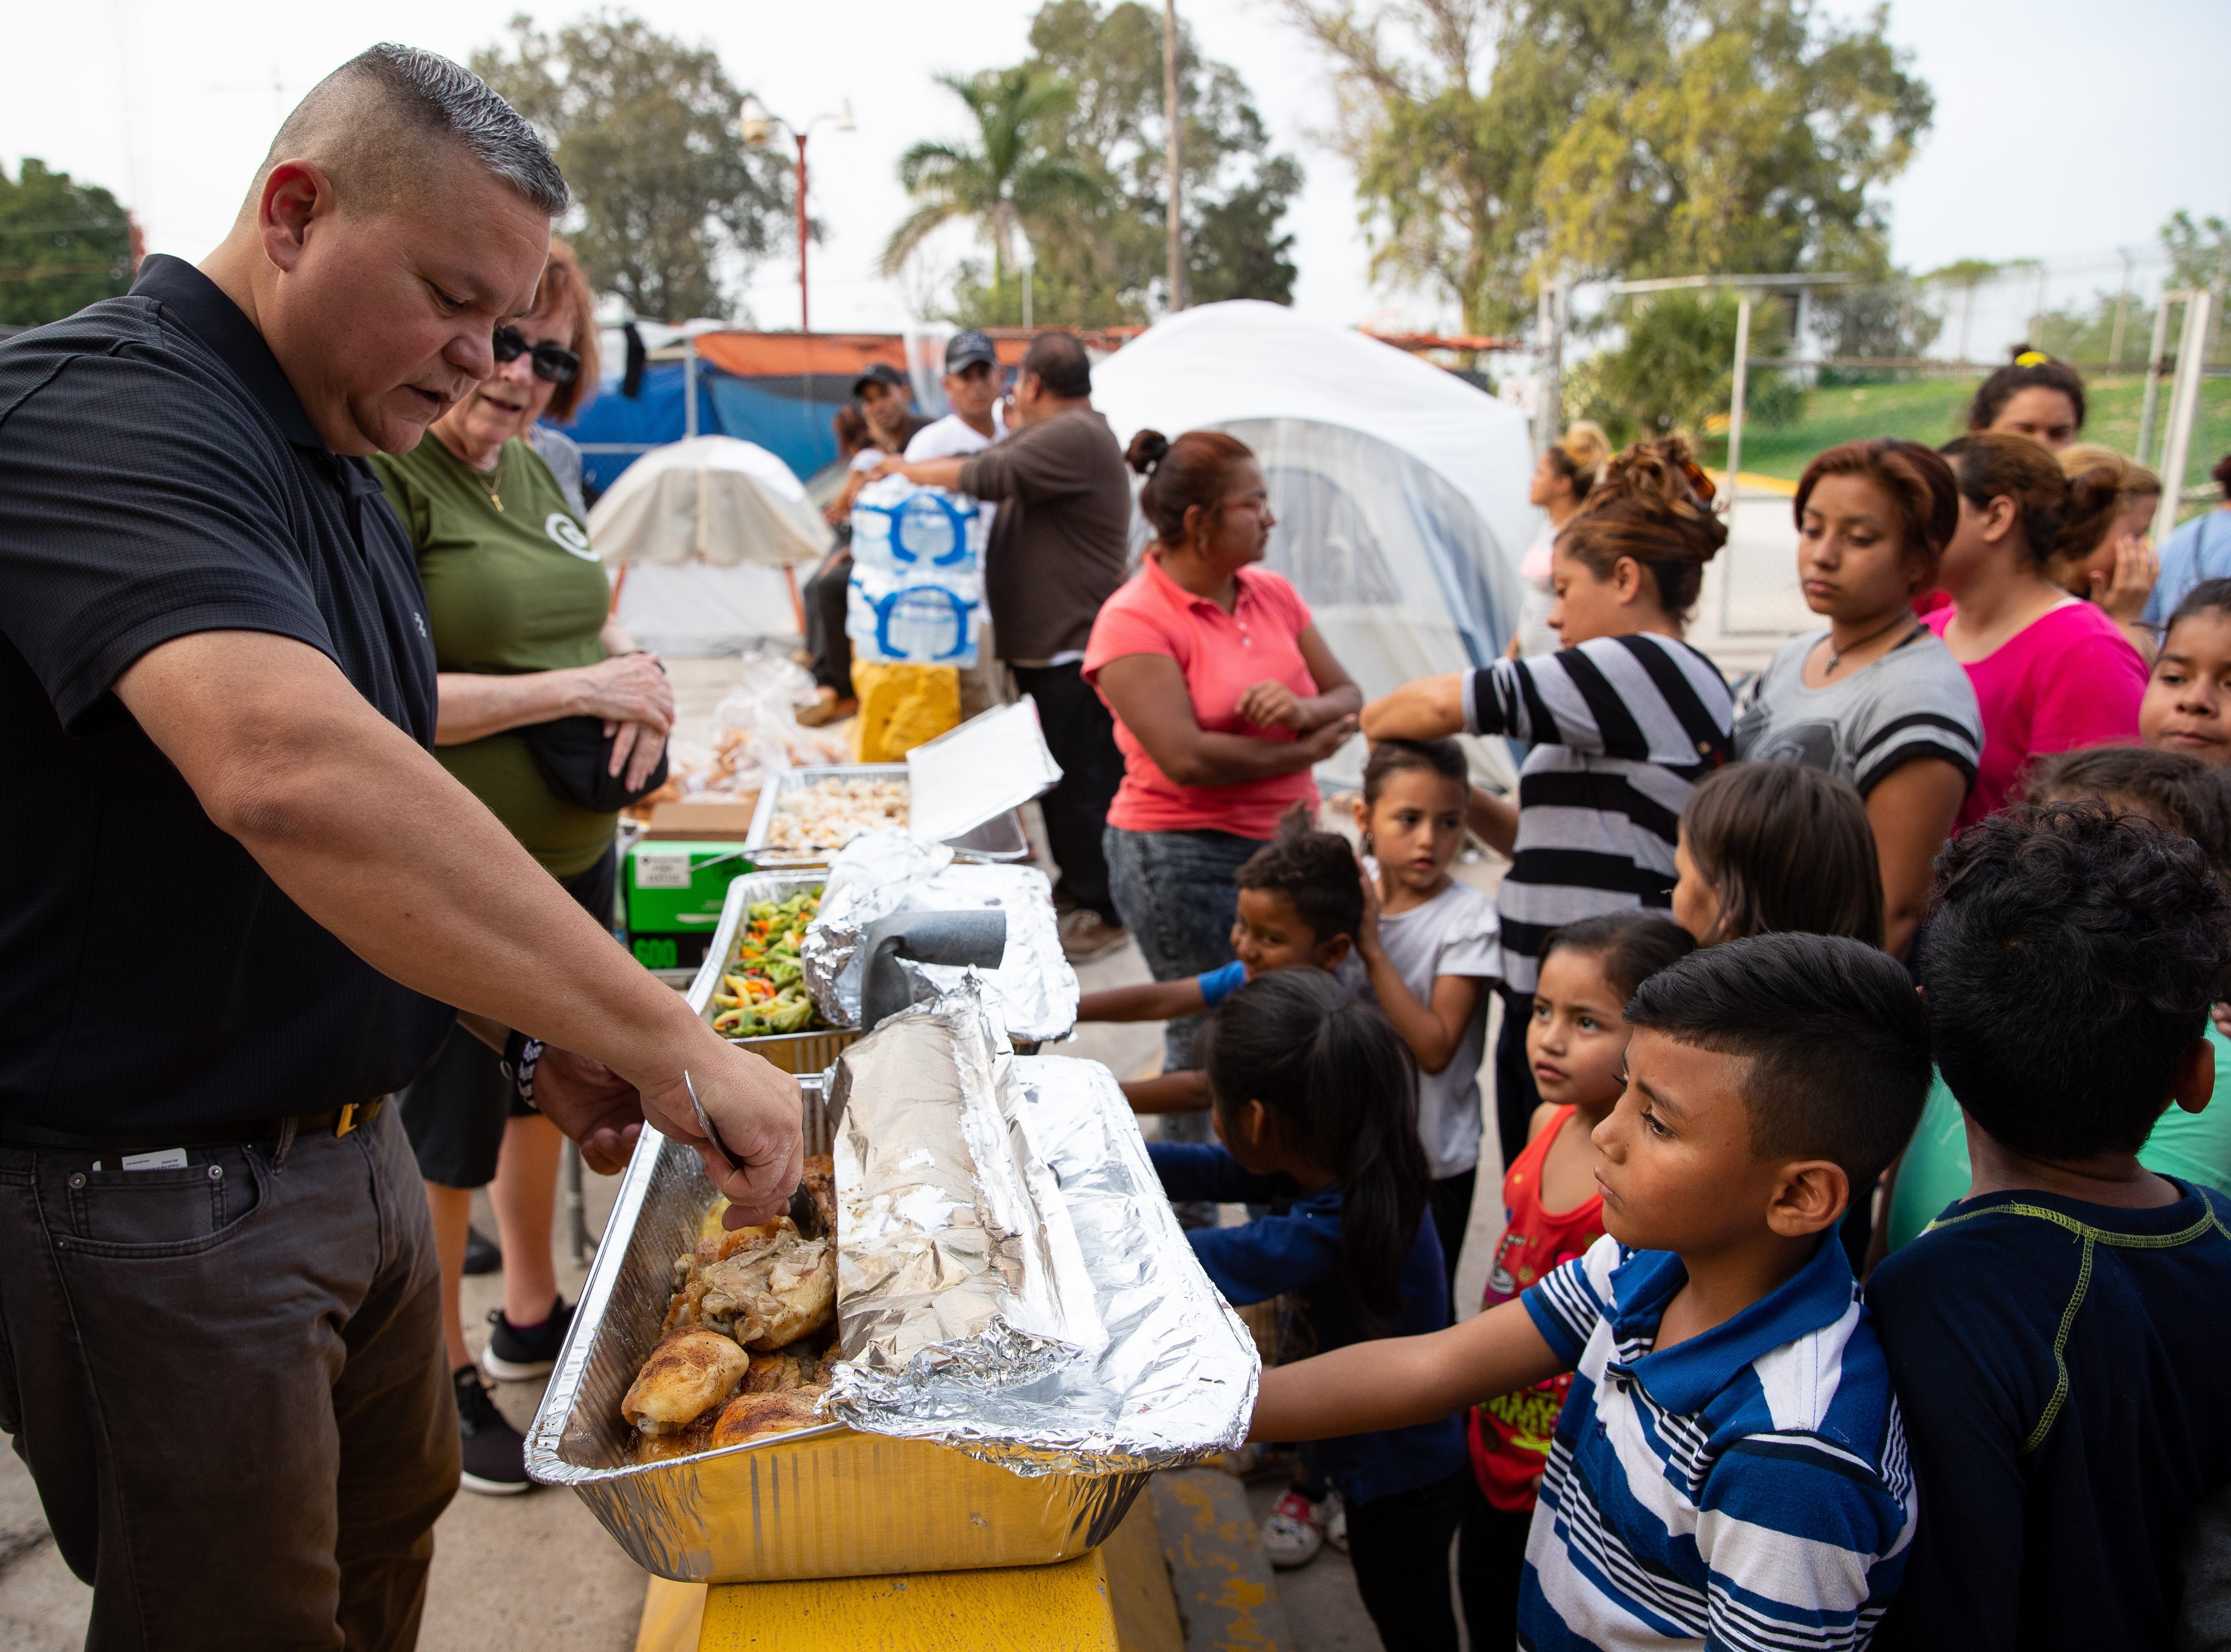 Mike Benavides, of Team Brownsville, and a group of volunteers serve dinner to migrants waiting to seek asylum in the U.S who are camped out in a park next to the the international bridge in Matamoros, Mexico on Thursday, April 4, 2019. Benavides and other volunteers bring two meals a day from the Brownsville Texas to Matamoros, Mexico to help the migrants waiting to seek asylum in the US.